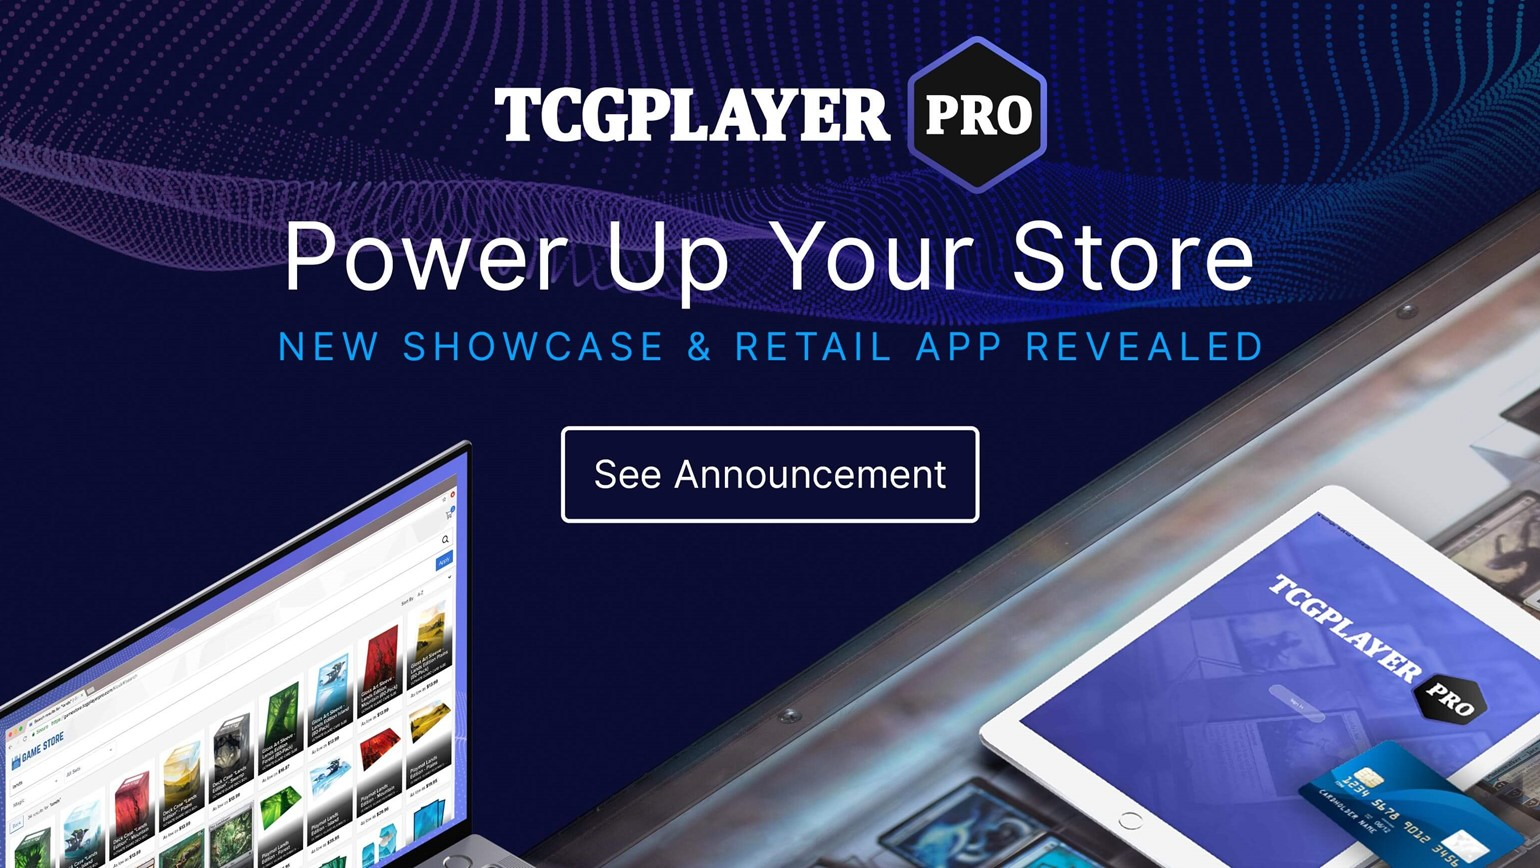 Power Up Your Store with New TCGplayer Showcase and Pro Retail App Revealed